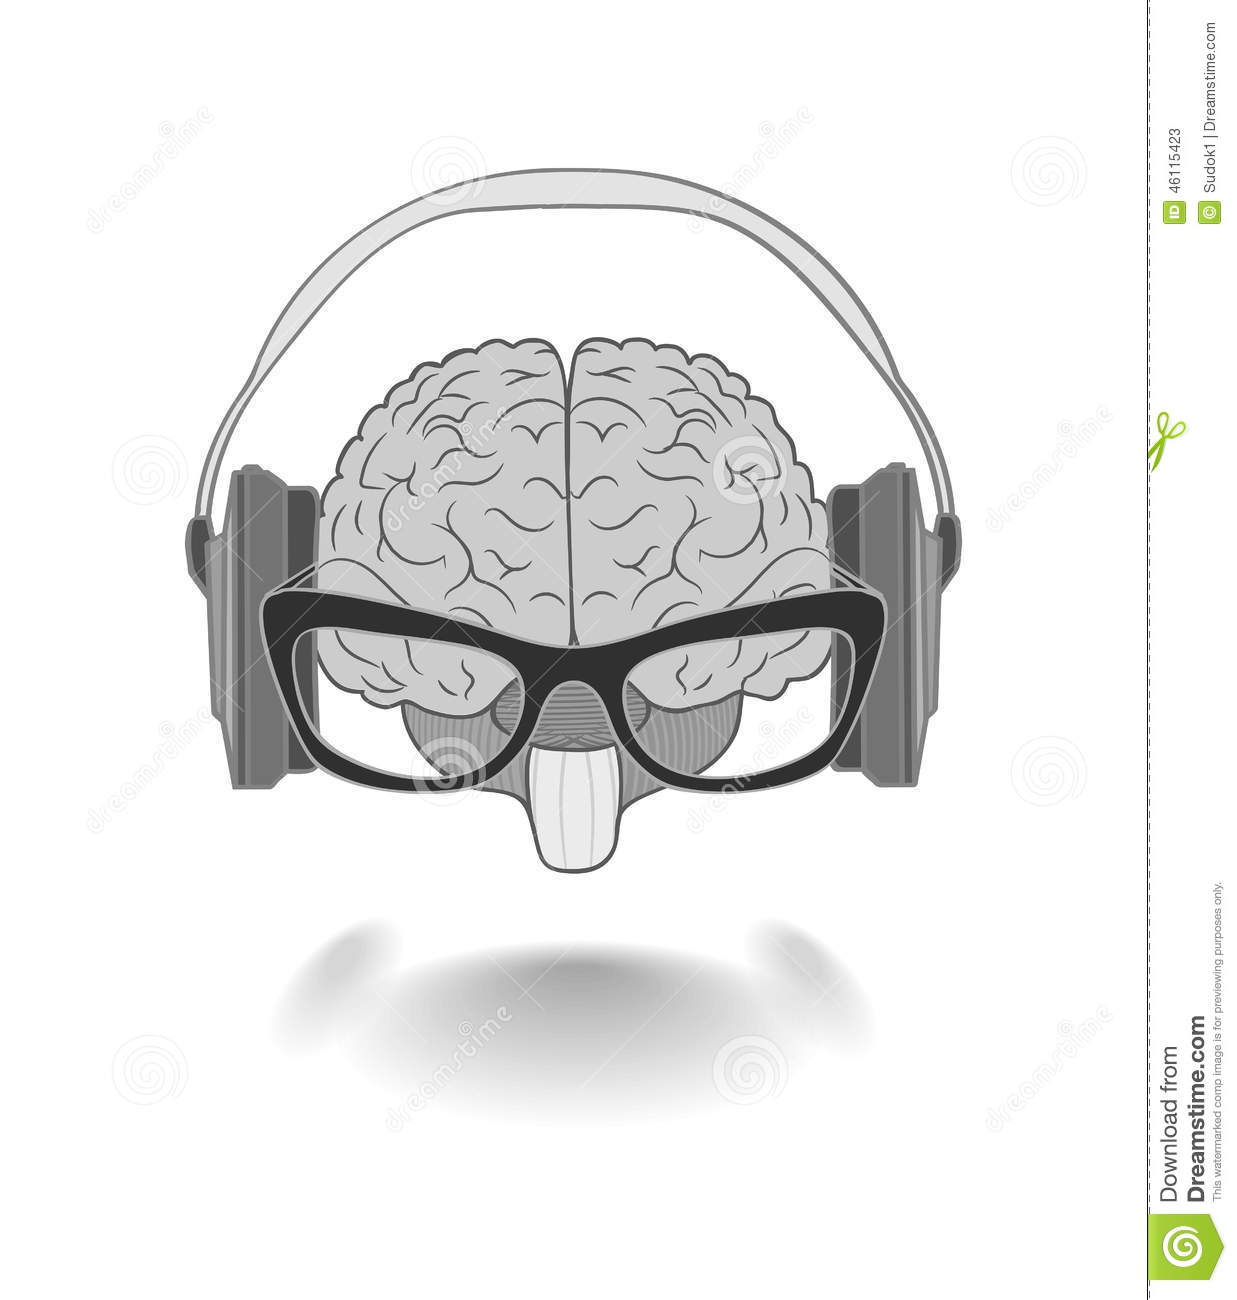 Concept Of The Human Brain With Glasses Enjoyer Music Stock.